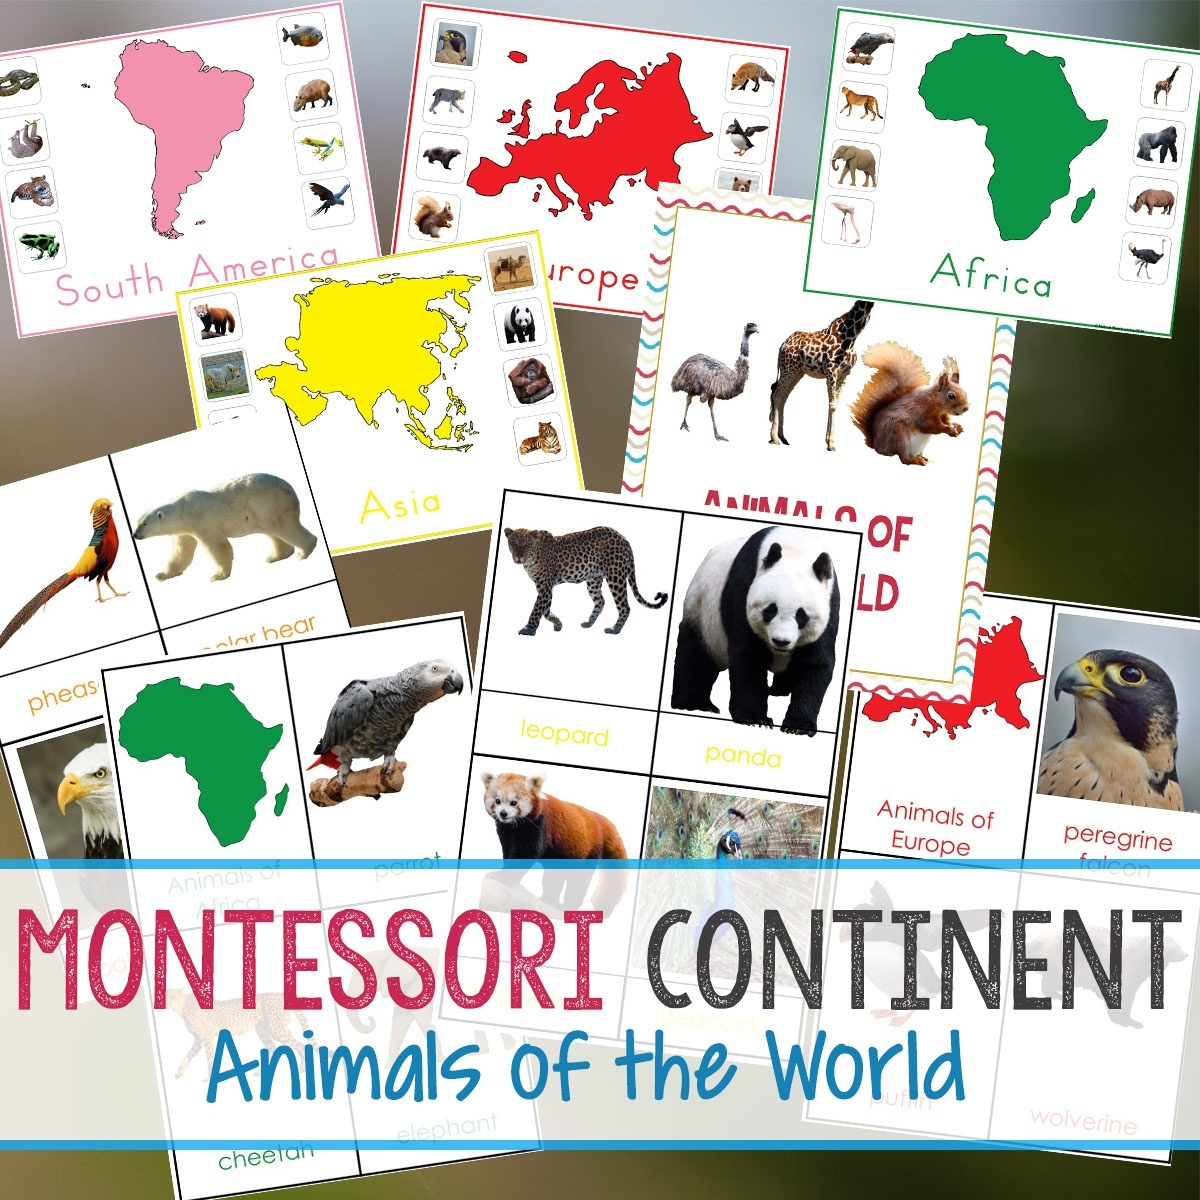 Montessori Animals And Continents Printables And Activities - Free Printable Animal Classification Cards